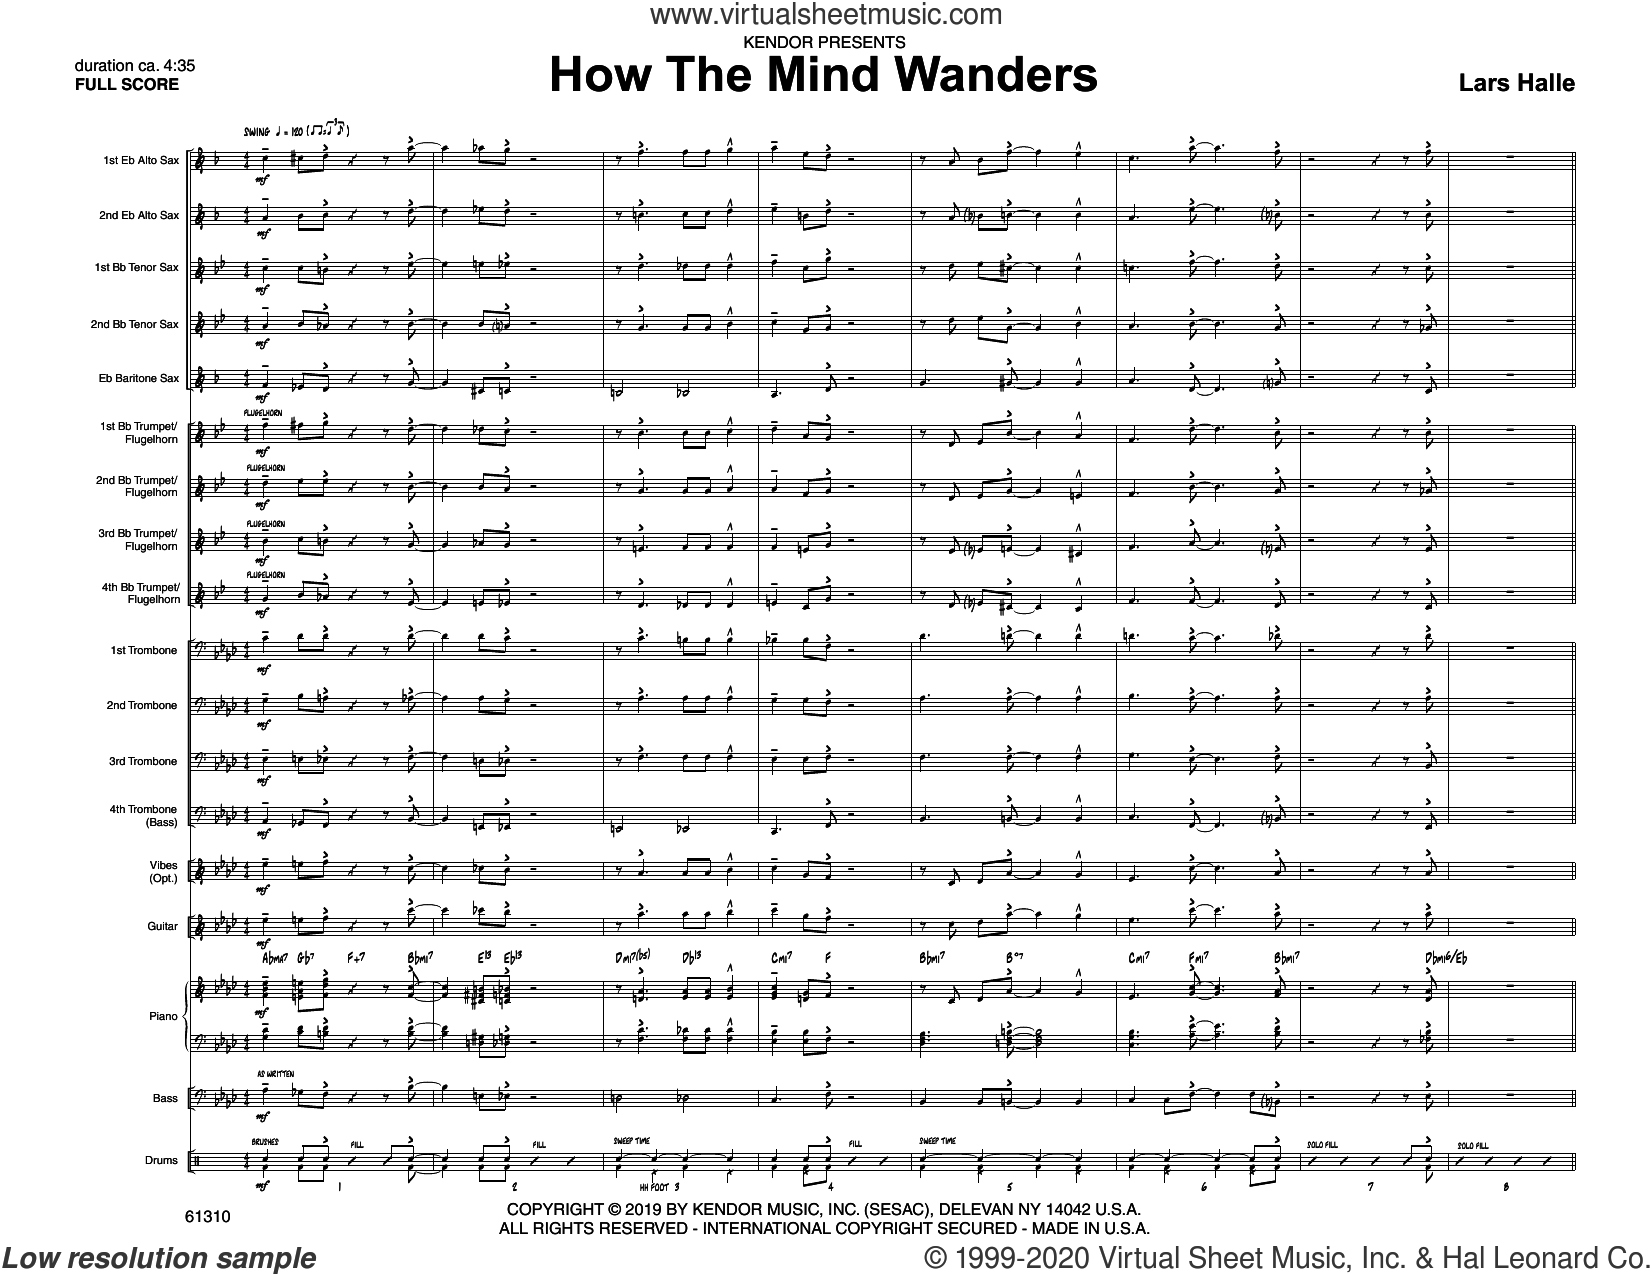 How The Mind Wanders (COMPLETE) sheet music for jazz band by Lars Halle, intermediate skill level